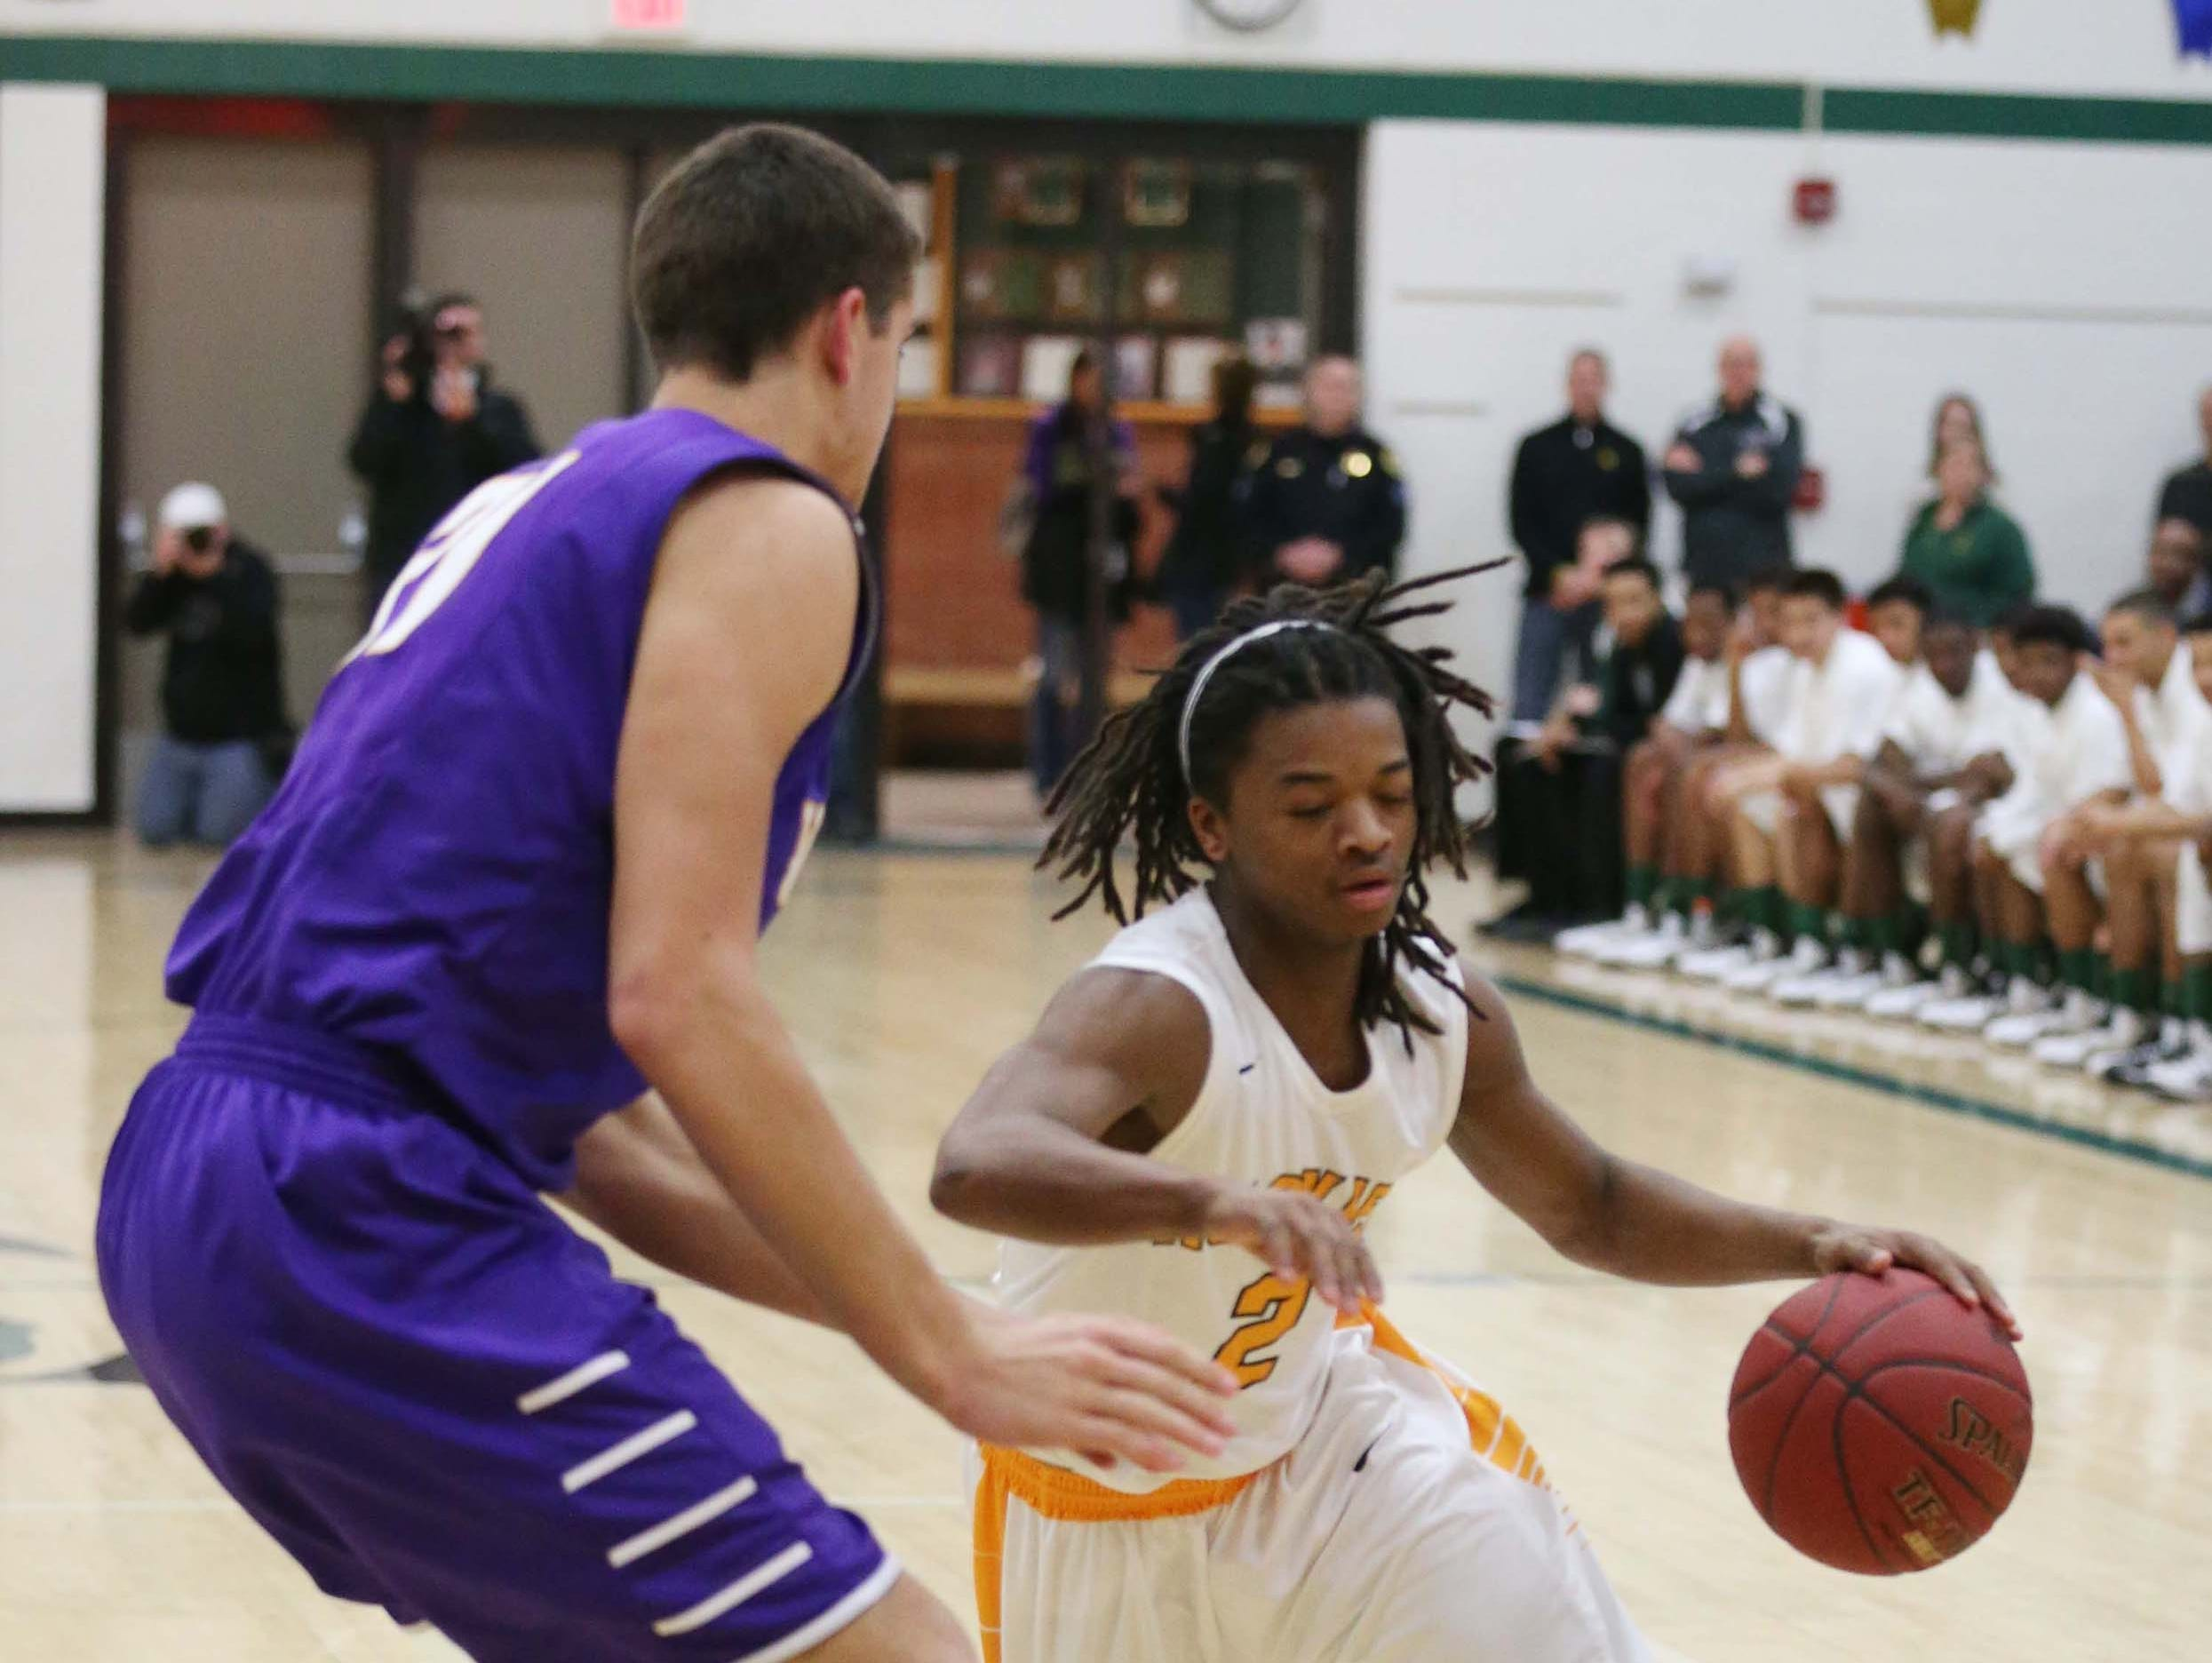 Hoover's Khallid Edwards drives to the basket on Feb. 10 against Waukee.